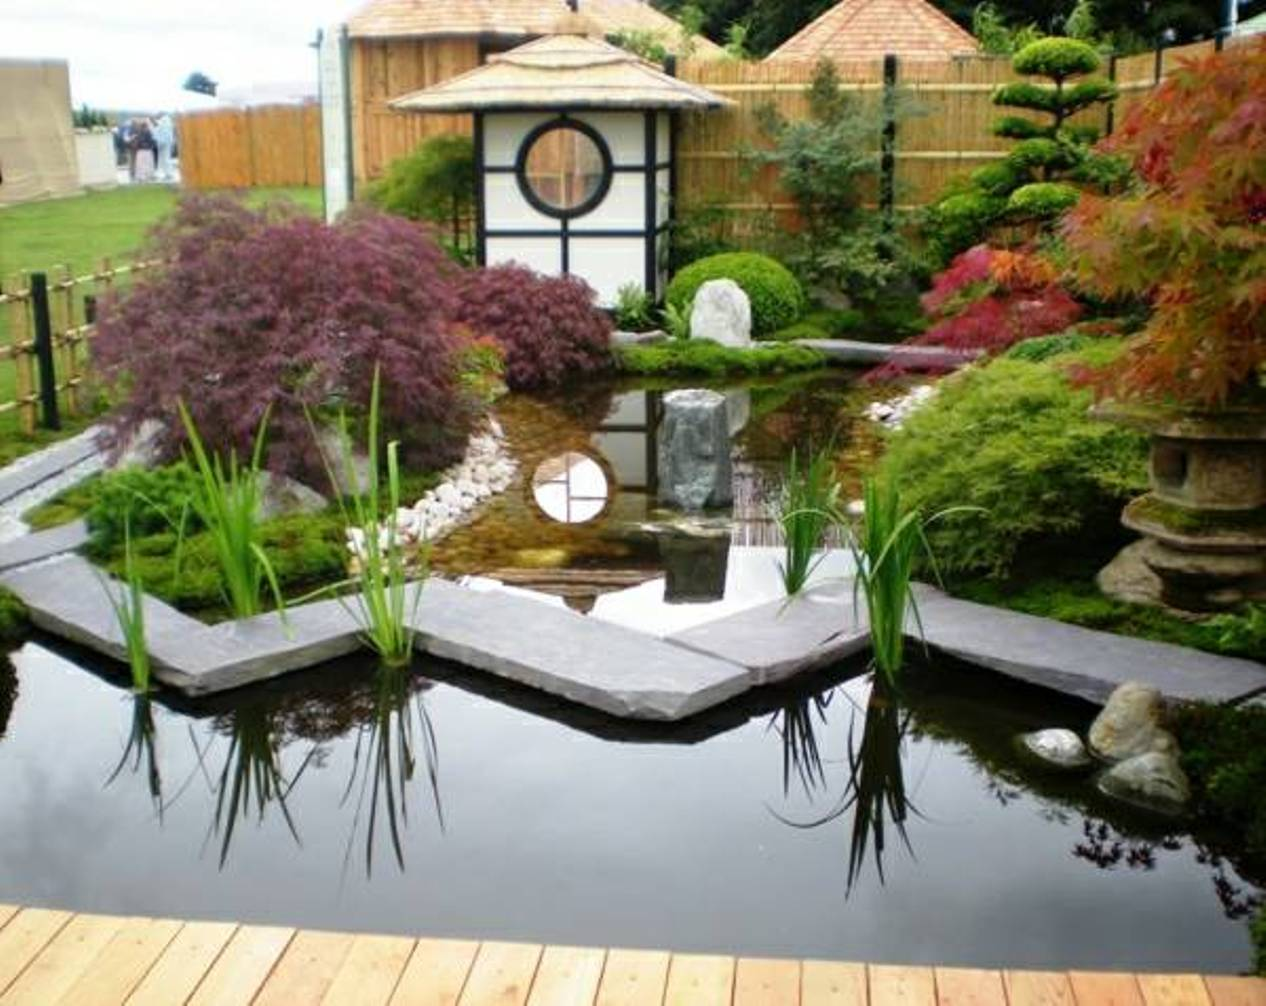 Pond design inspiration pond stars uk ltd dorset for Japanese koi pond garden design